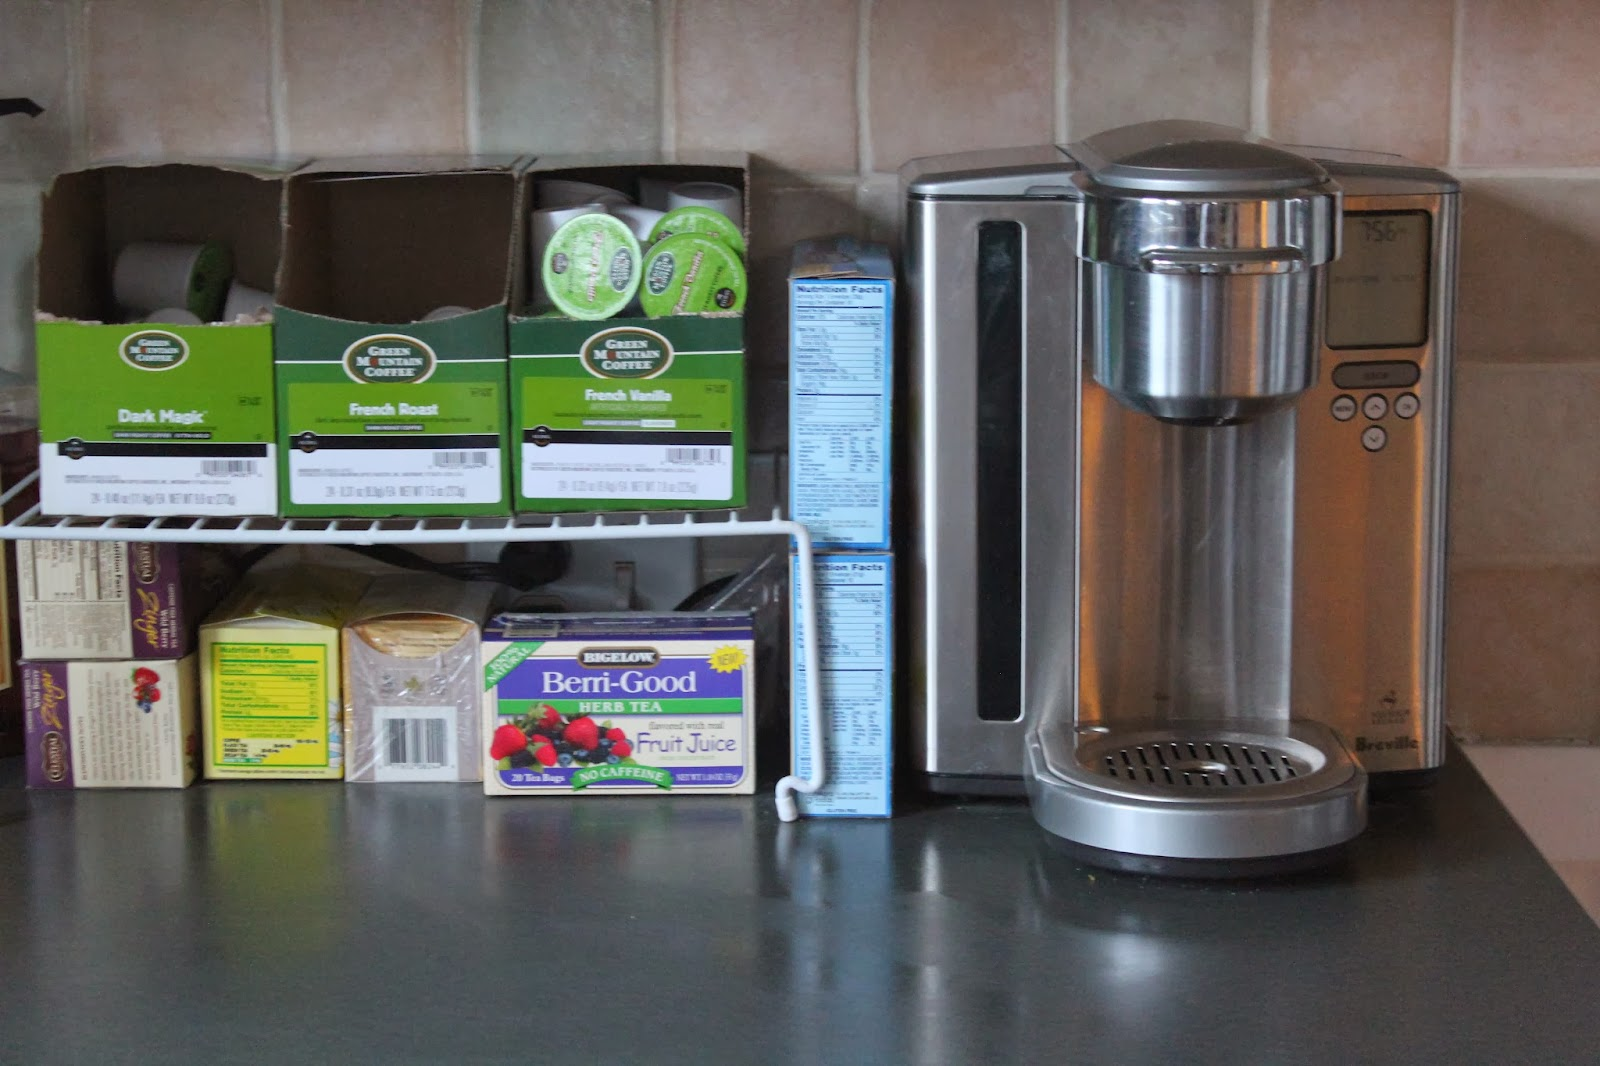 Keurig brewer and Green Mountain Coffee